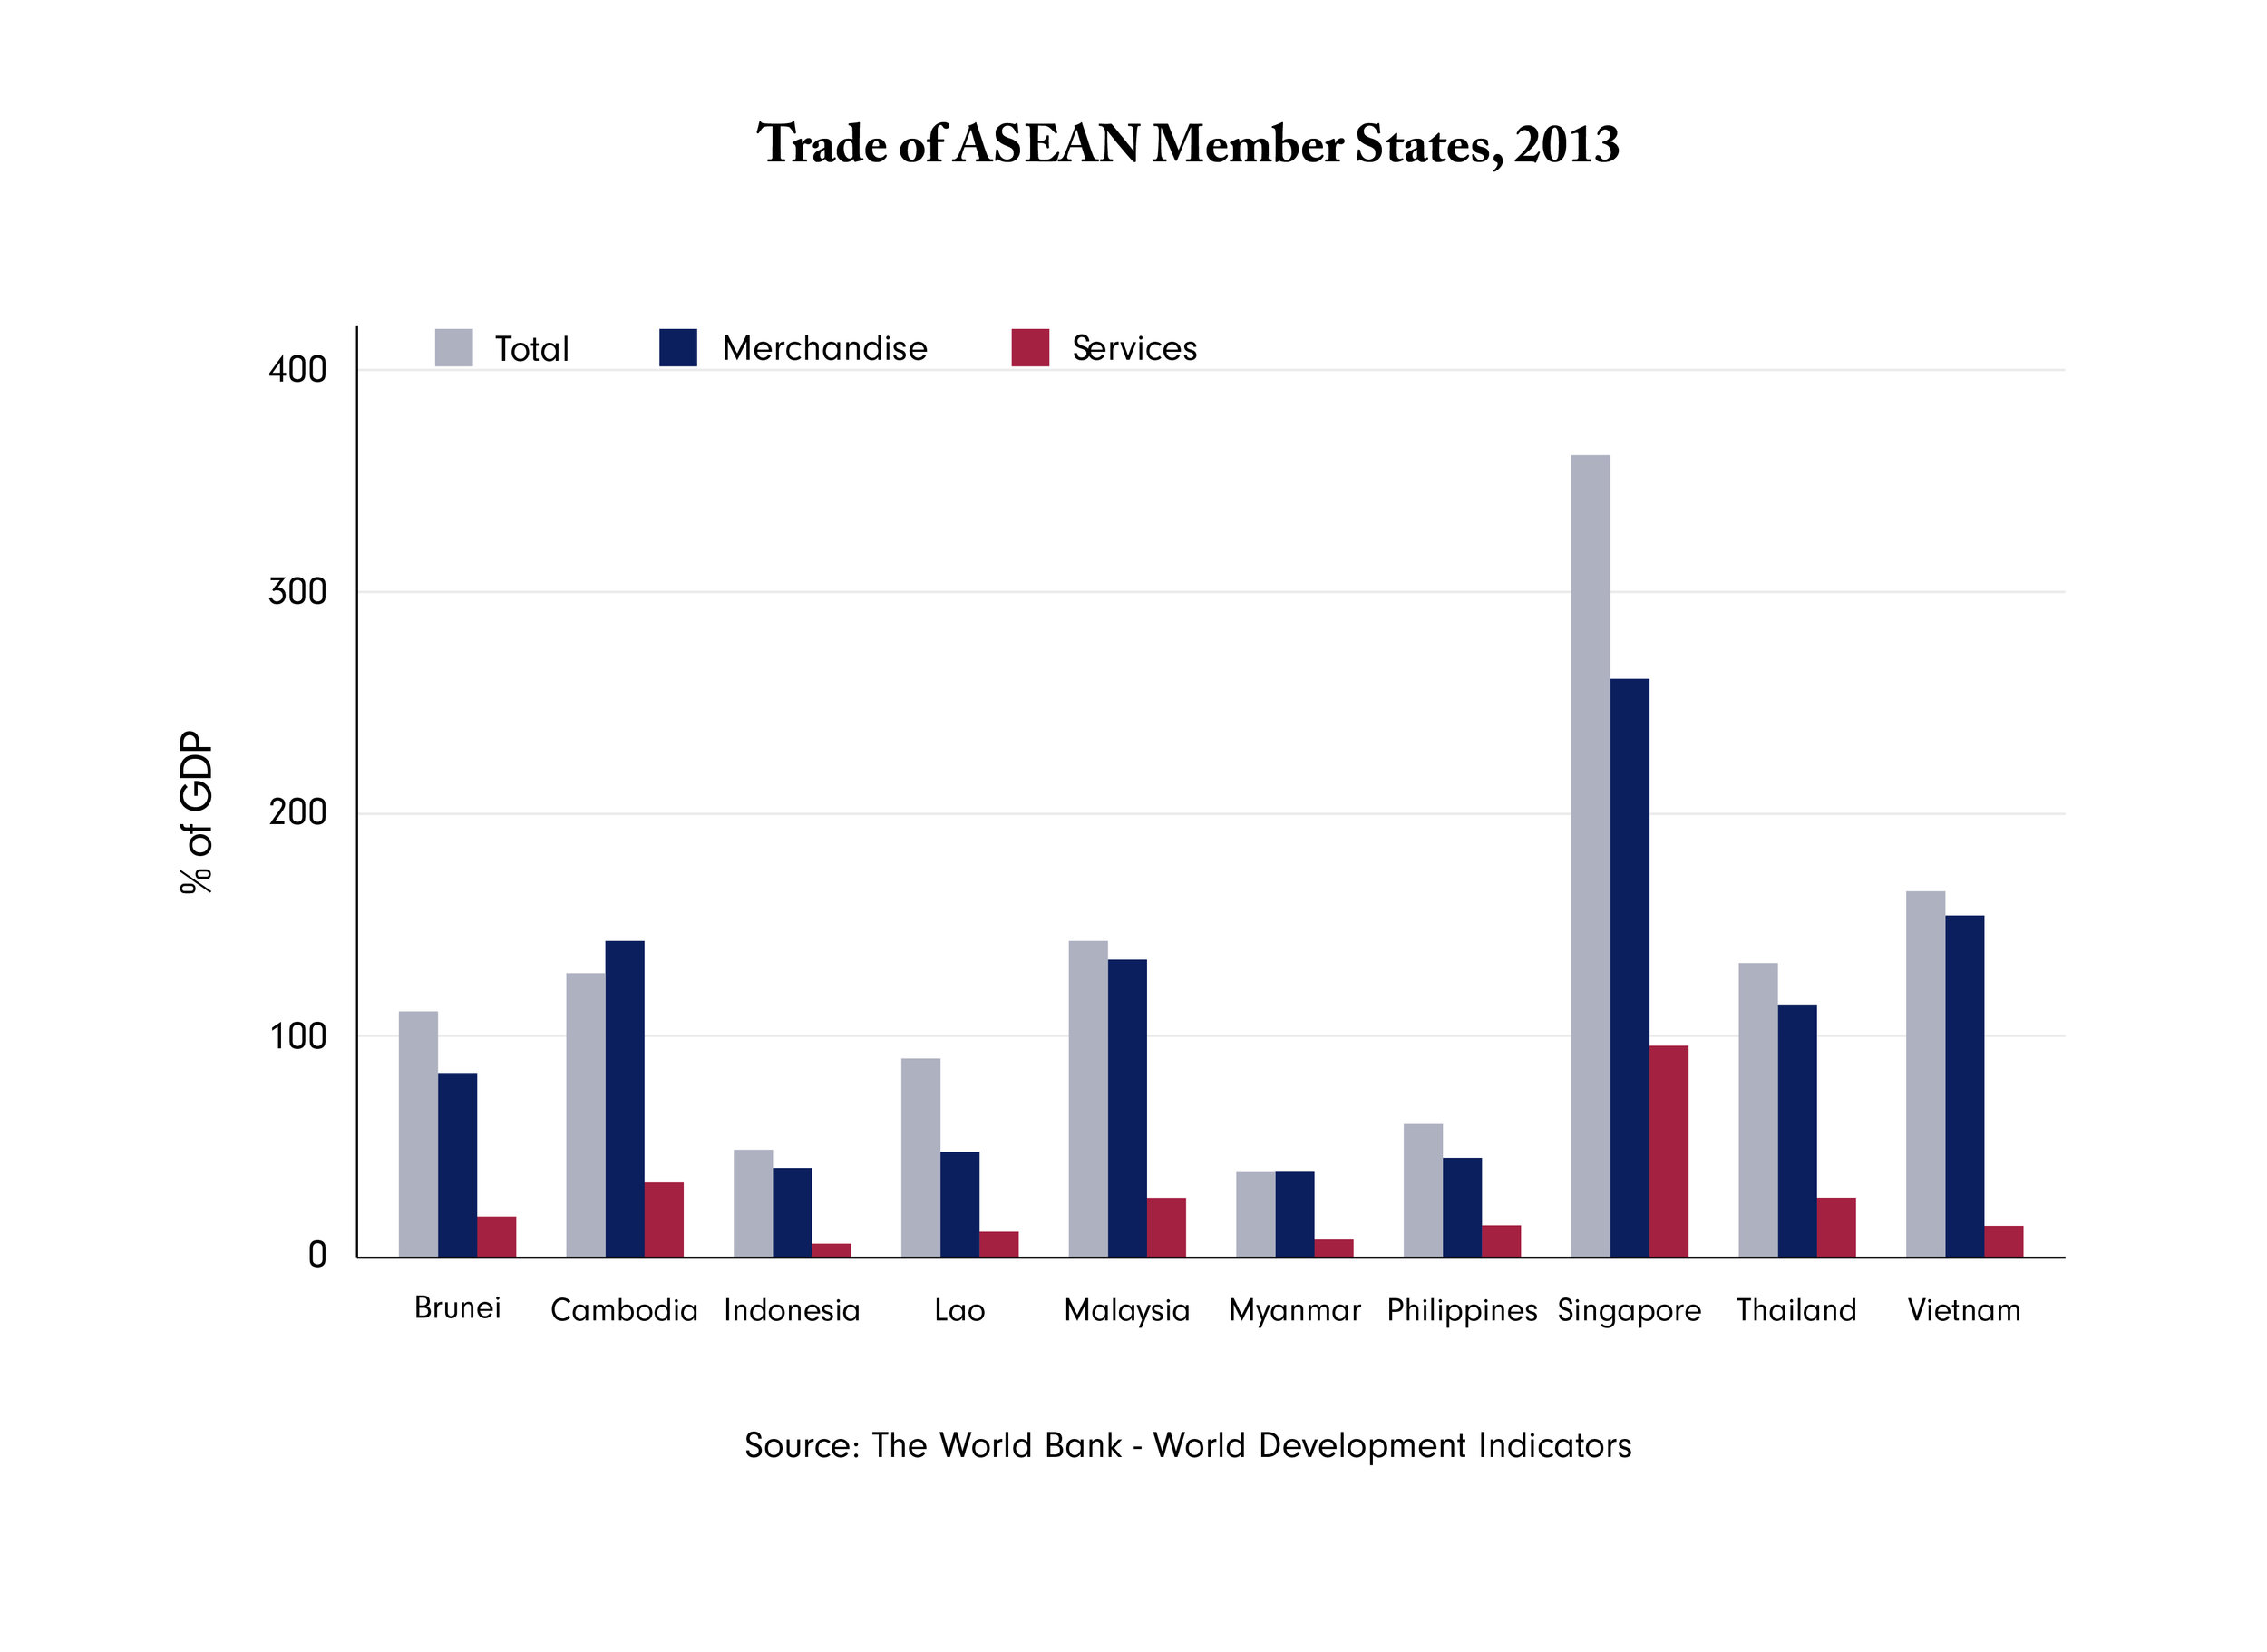 Figure 1 : ASEAN member states' trade in terms of GDP. Data for Myanmar are incomplete. Inconsistency in data for Cambodia originates from World Bank's data.